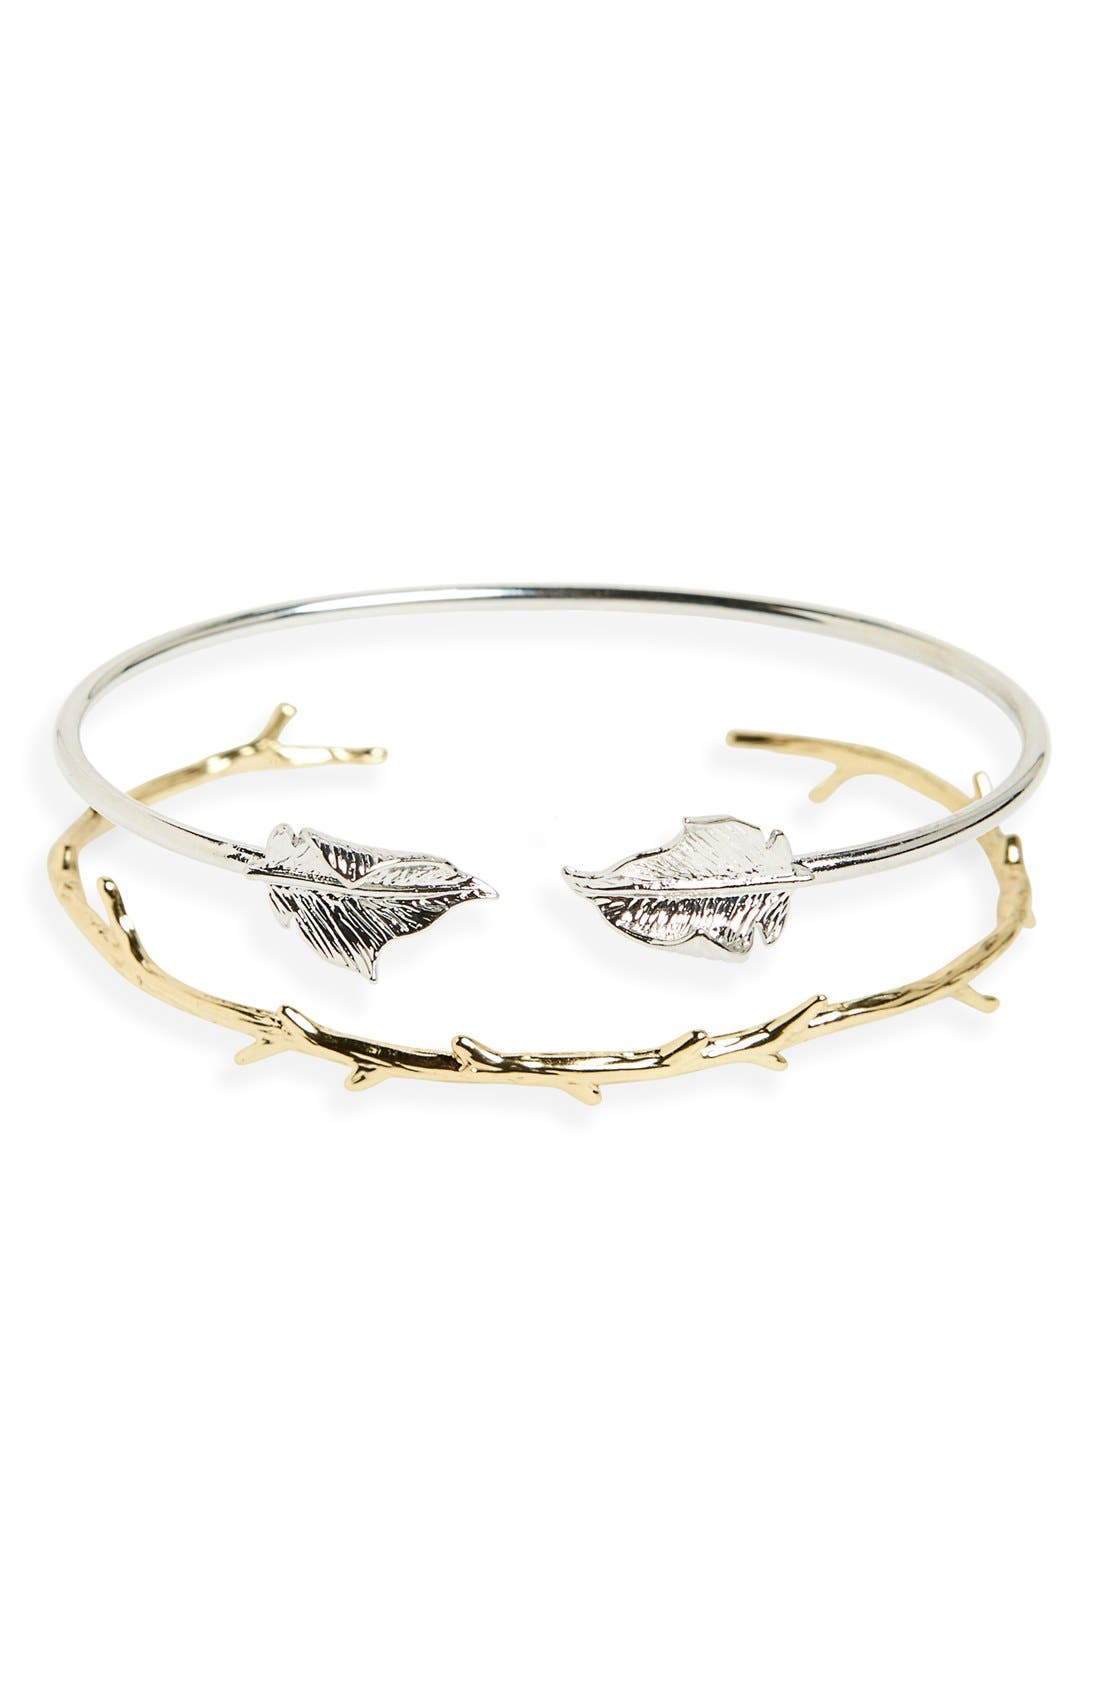 Alternate Image 1 Selected - Sole Society Leaf & Thorn Cuffs (Set of 2)